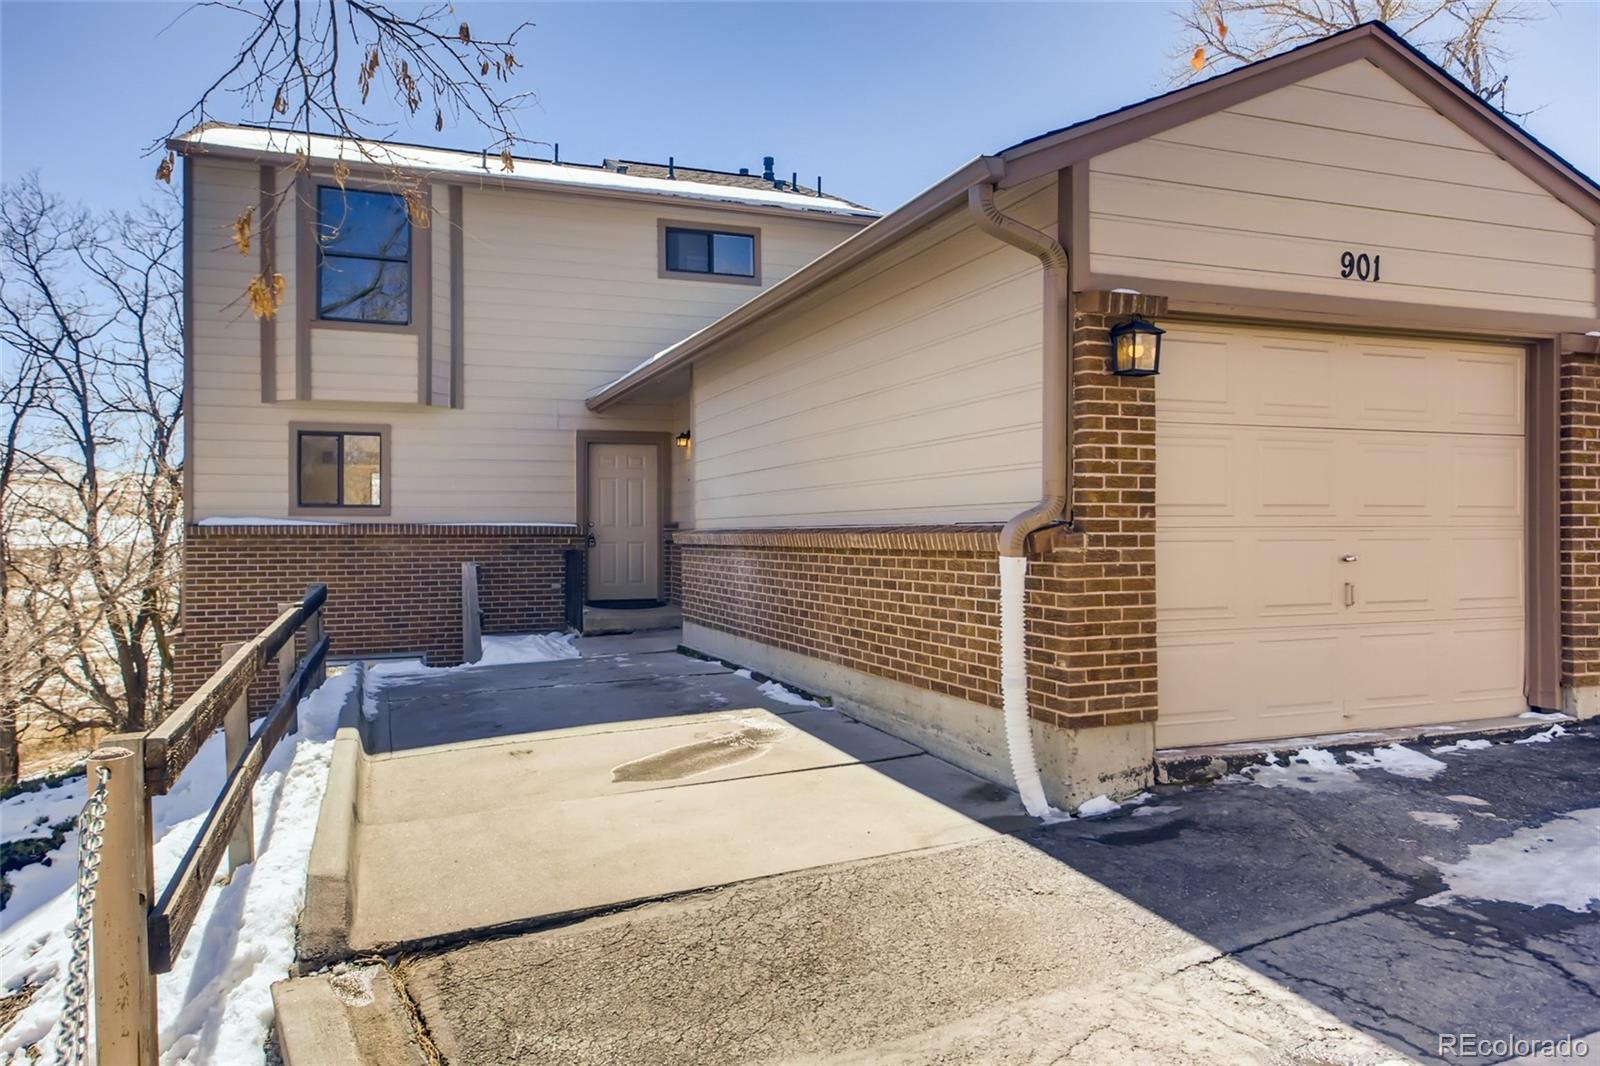 This charming, beautifully remodeled townhome sits at the end of the cul-de-sac, which backs and sides to heavily wooded open space. The area is perfect for the outdoor enthusiast who's looking for that perfect location.  The main level is an ideal size for entertaining, with a completely remodeled kitchen and dining room that extends to the living room with newly refinished wood flooring and of course, it wouldn't be complete without the coziness of a gas fireplace.  Also on the main floor there is a bedroom, full bath, a large laundry-mud room coming in from the one-car garage and a deck off the living room with mountain views!  On the second floor you have a master suite with a spacious 3/4 bathroom with a new double vanity, sinks, lighting and new flooring. There is also a third bedroom and full bath.  As a  great added value, you still have a full 90% newly remodeled walk-out basement with a fourth bedroom, family room, gas stove,  utility room and a designated area for a full or 3/4 bath in the future.  The entire home has new paint, new carpet, new lighting fixtures, new electrical outlets, switches, appliances, new cabinets, quartz counter tops and all new undermount sinks and faucets.  Kinney Run community is an easy walk or bike ride to Colorado School of Mines and historic downtown Golden. If you like the cozy mountain feel with the convenience of great restaurants, shopping, biking/hiking trails, then this home may be perfect for you.  Call Bobbie or Andy for your personalized tour!